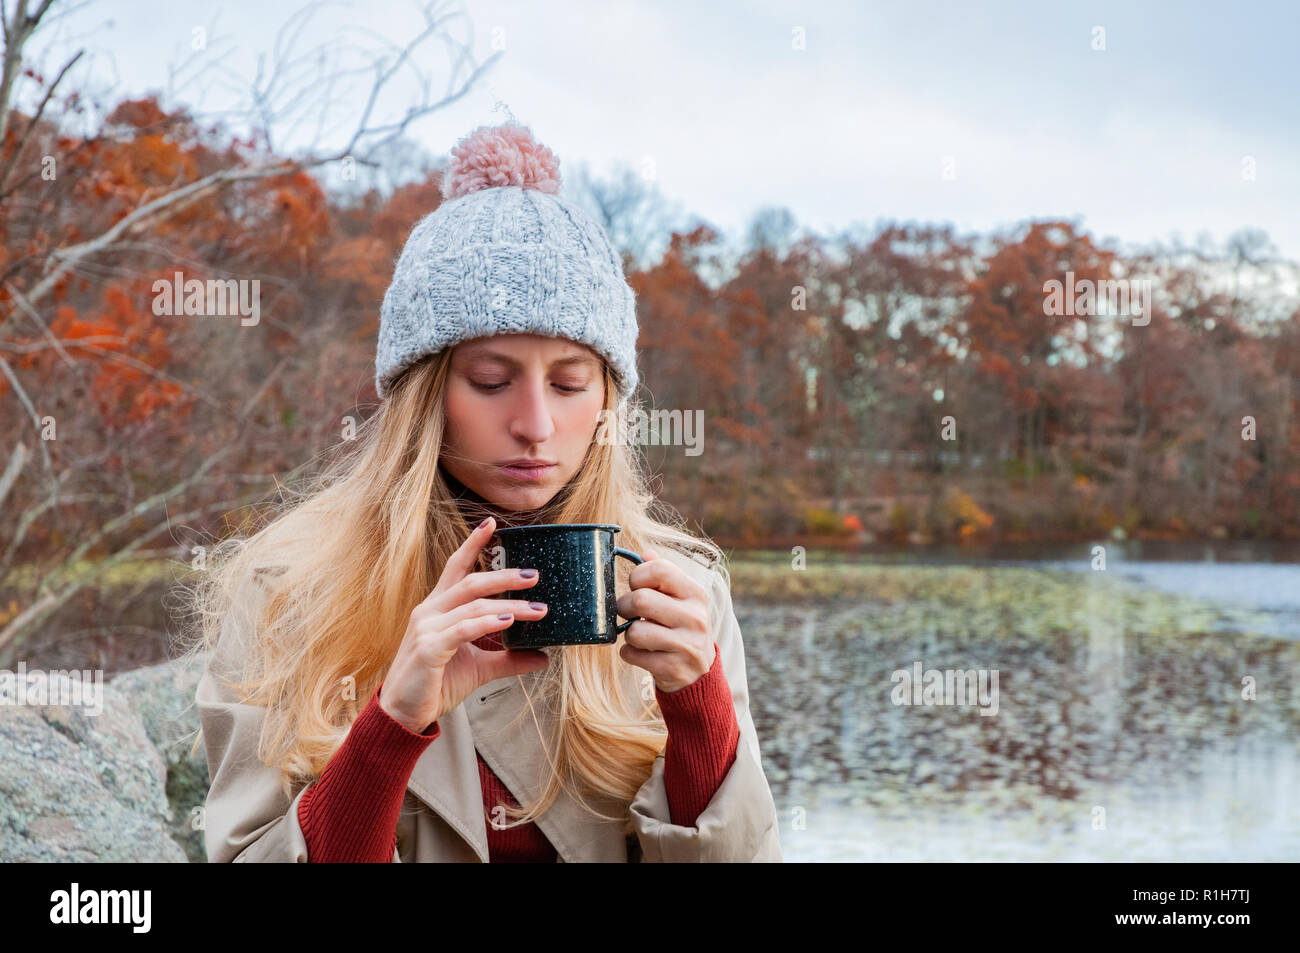 Beautiful woman in warm clothes and knitted hat drinking coffee in autumn park. Woman holding mug of coffee in the hands outdoor. Stock Photo